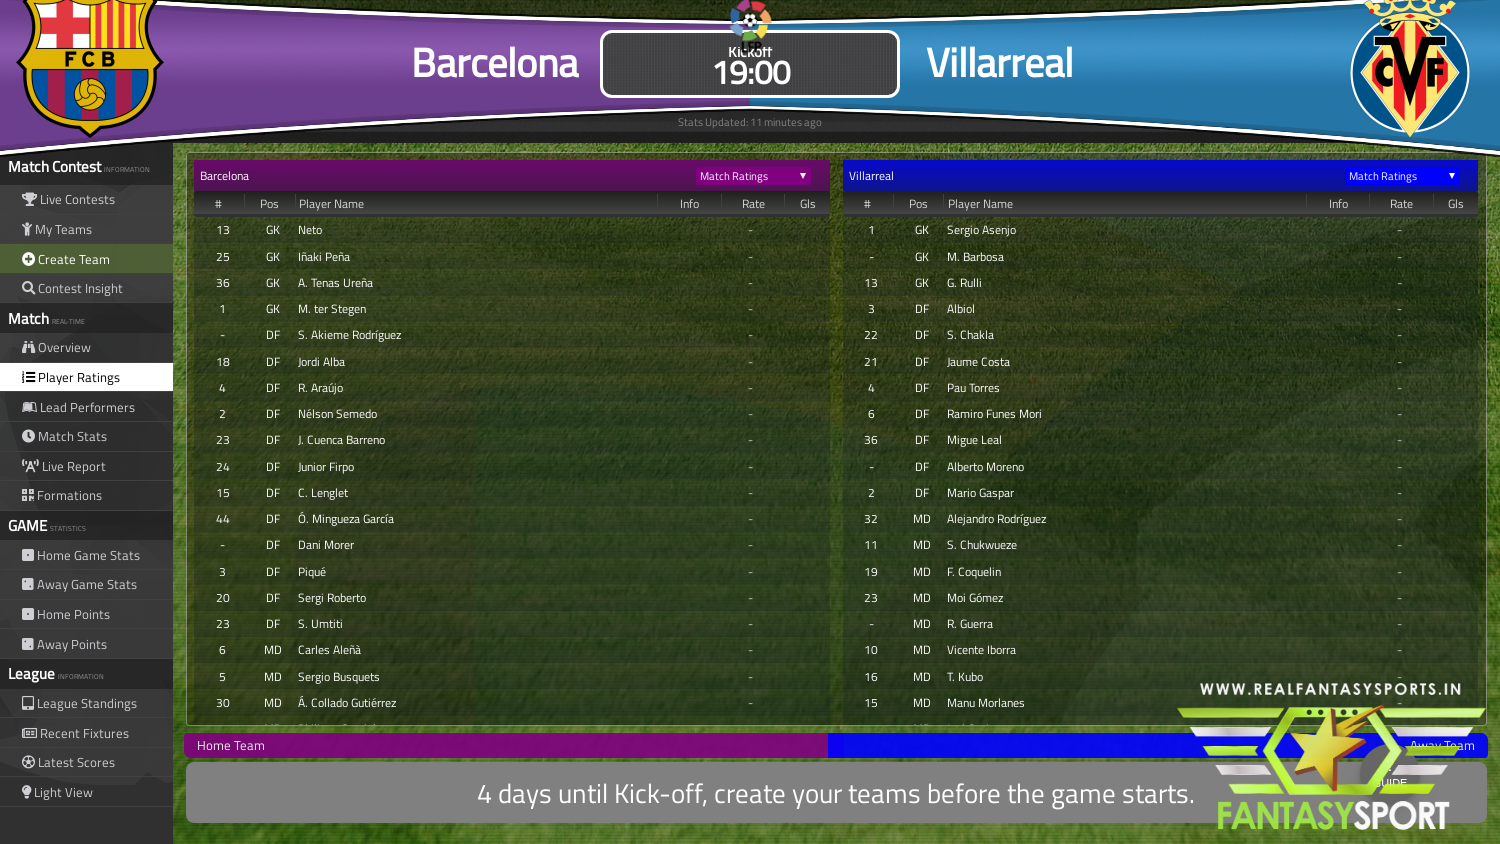 Barcelona vs Villarreal dream team prediction (27th September 2020)